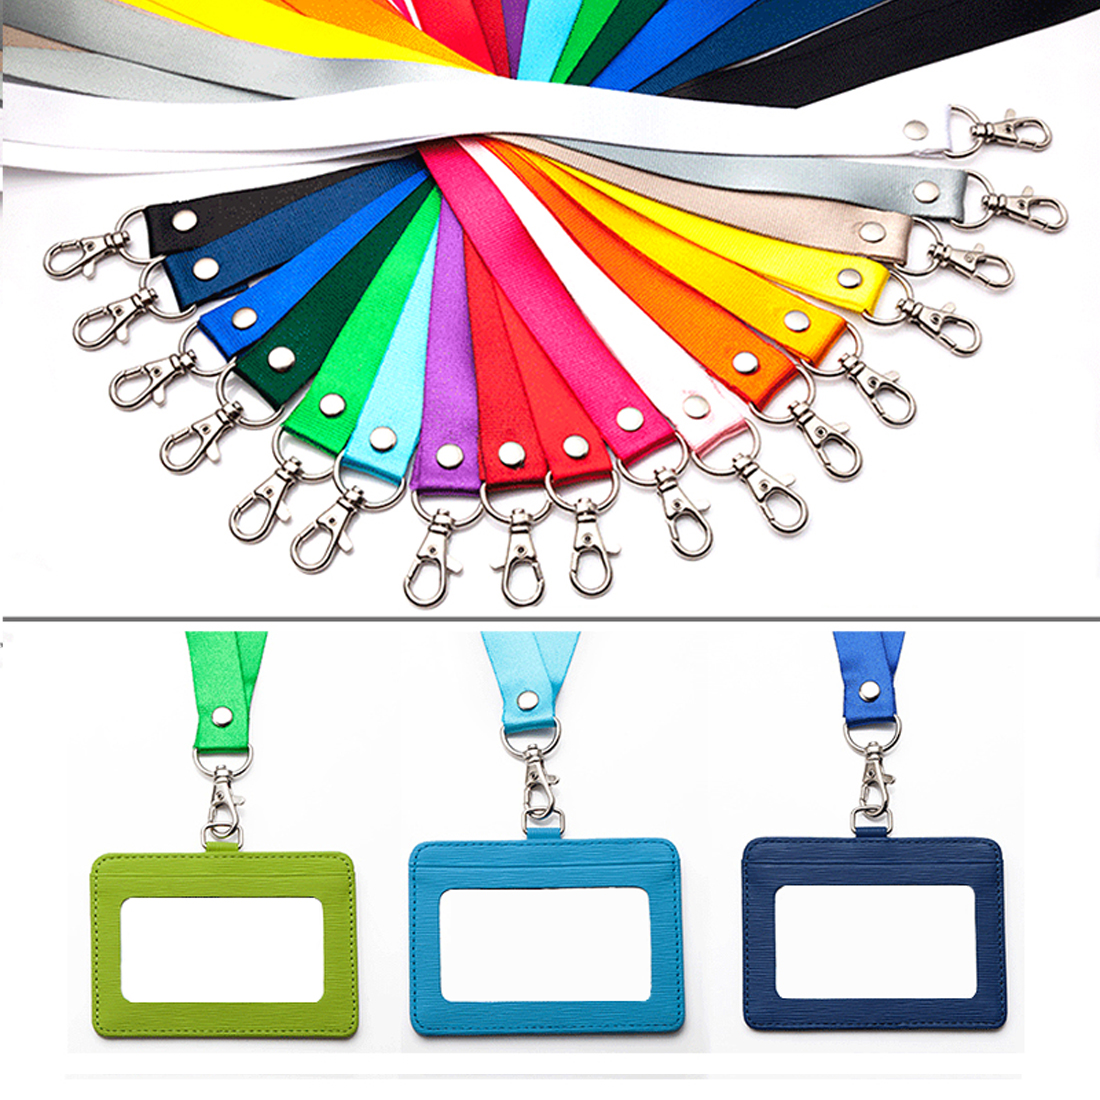 DEZHI Metal Q Clip Neck Strap 20mm For Mobile Phone Holder, Colorful Badge Lanyard With Metal Clip